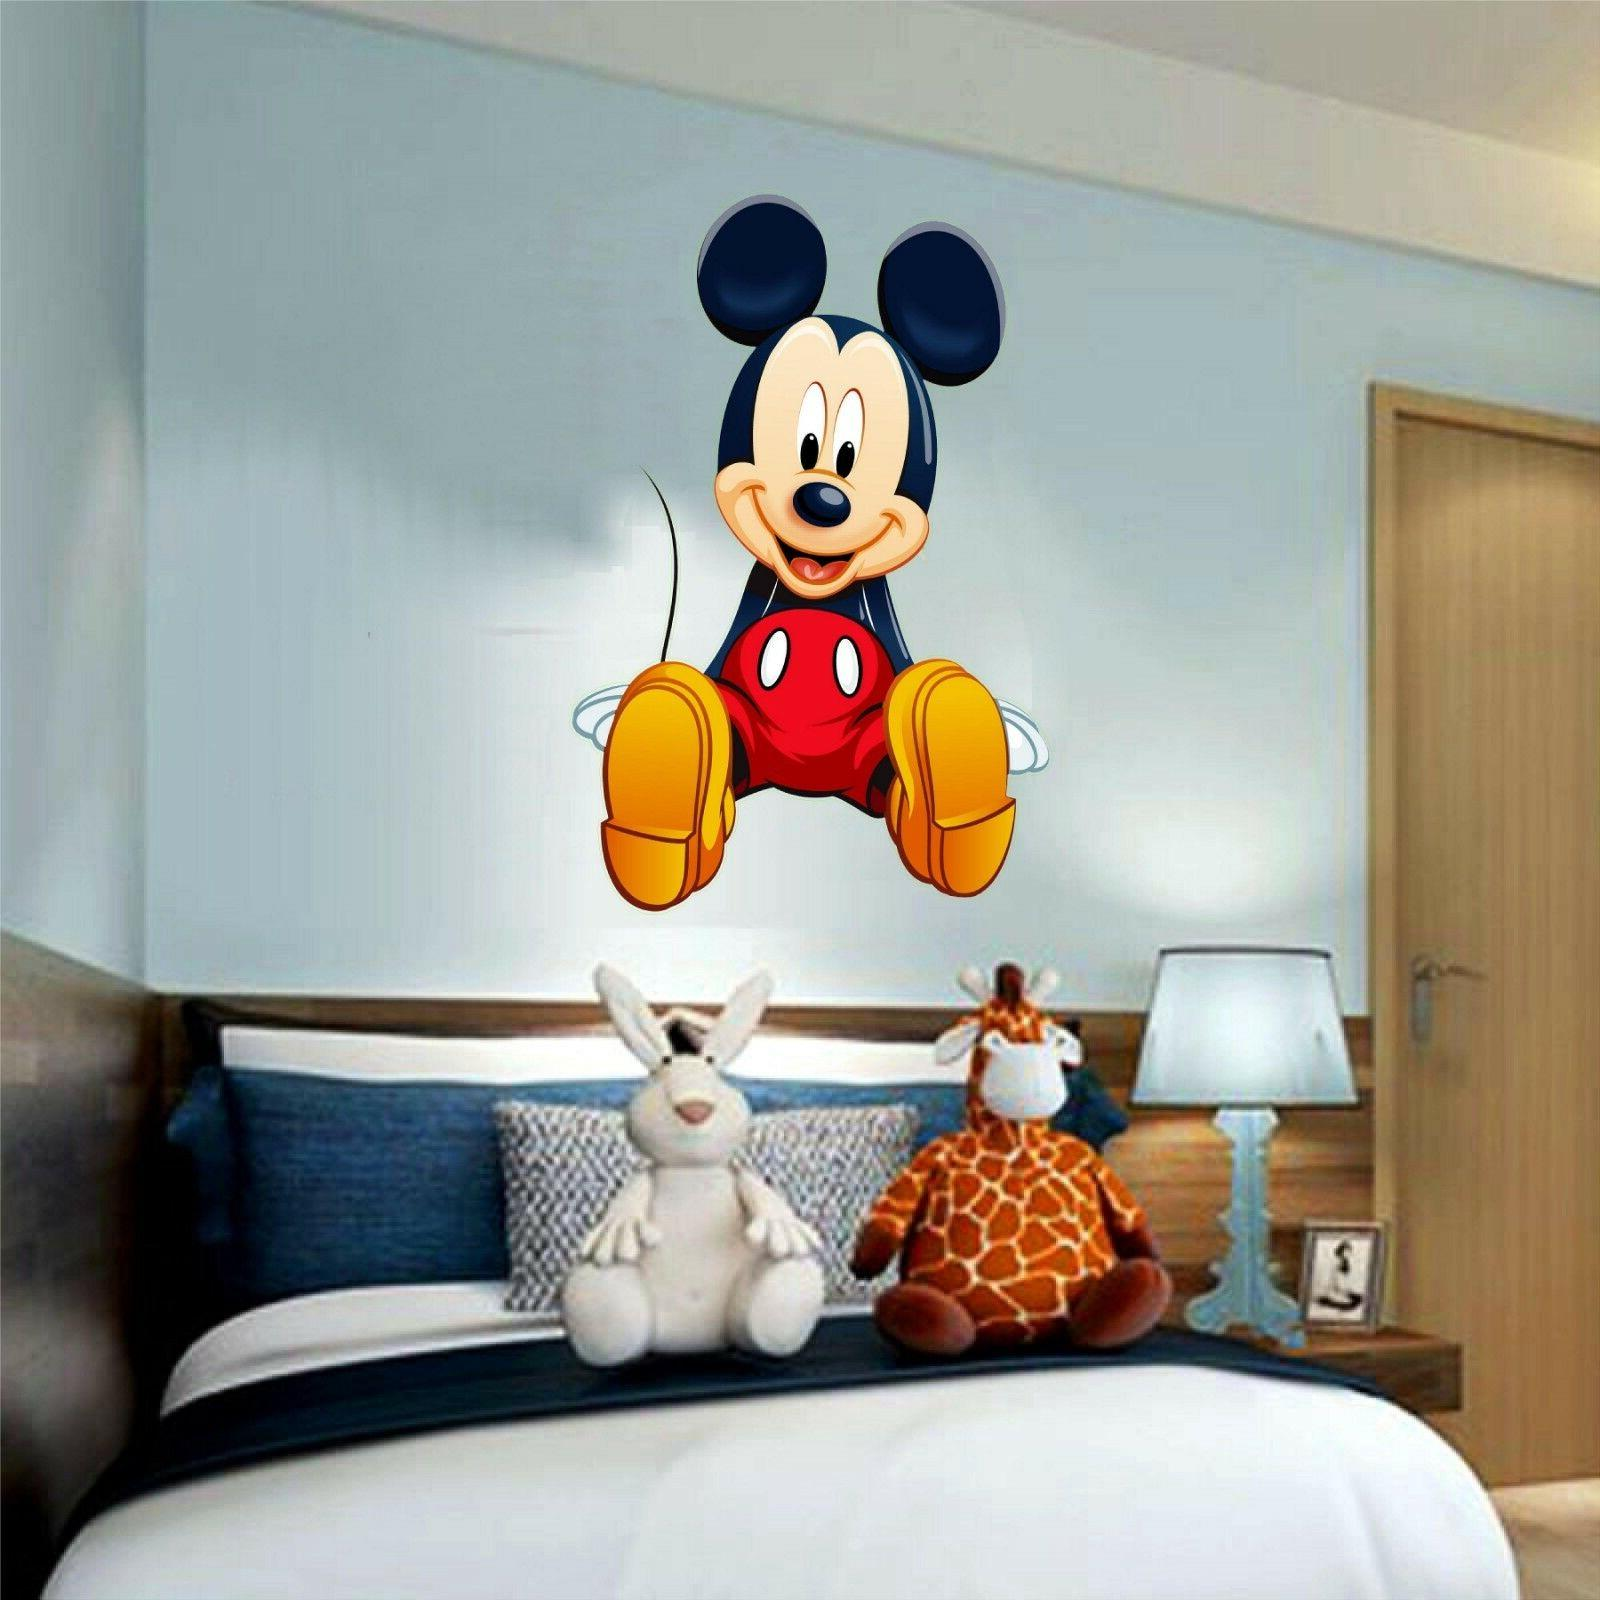 mickey mouse disney 3d window decal wall